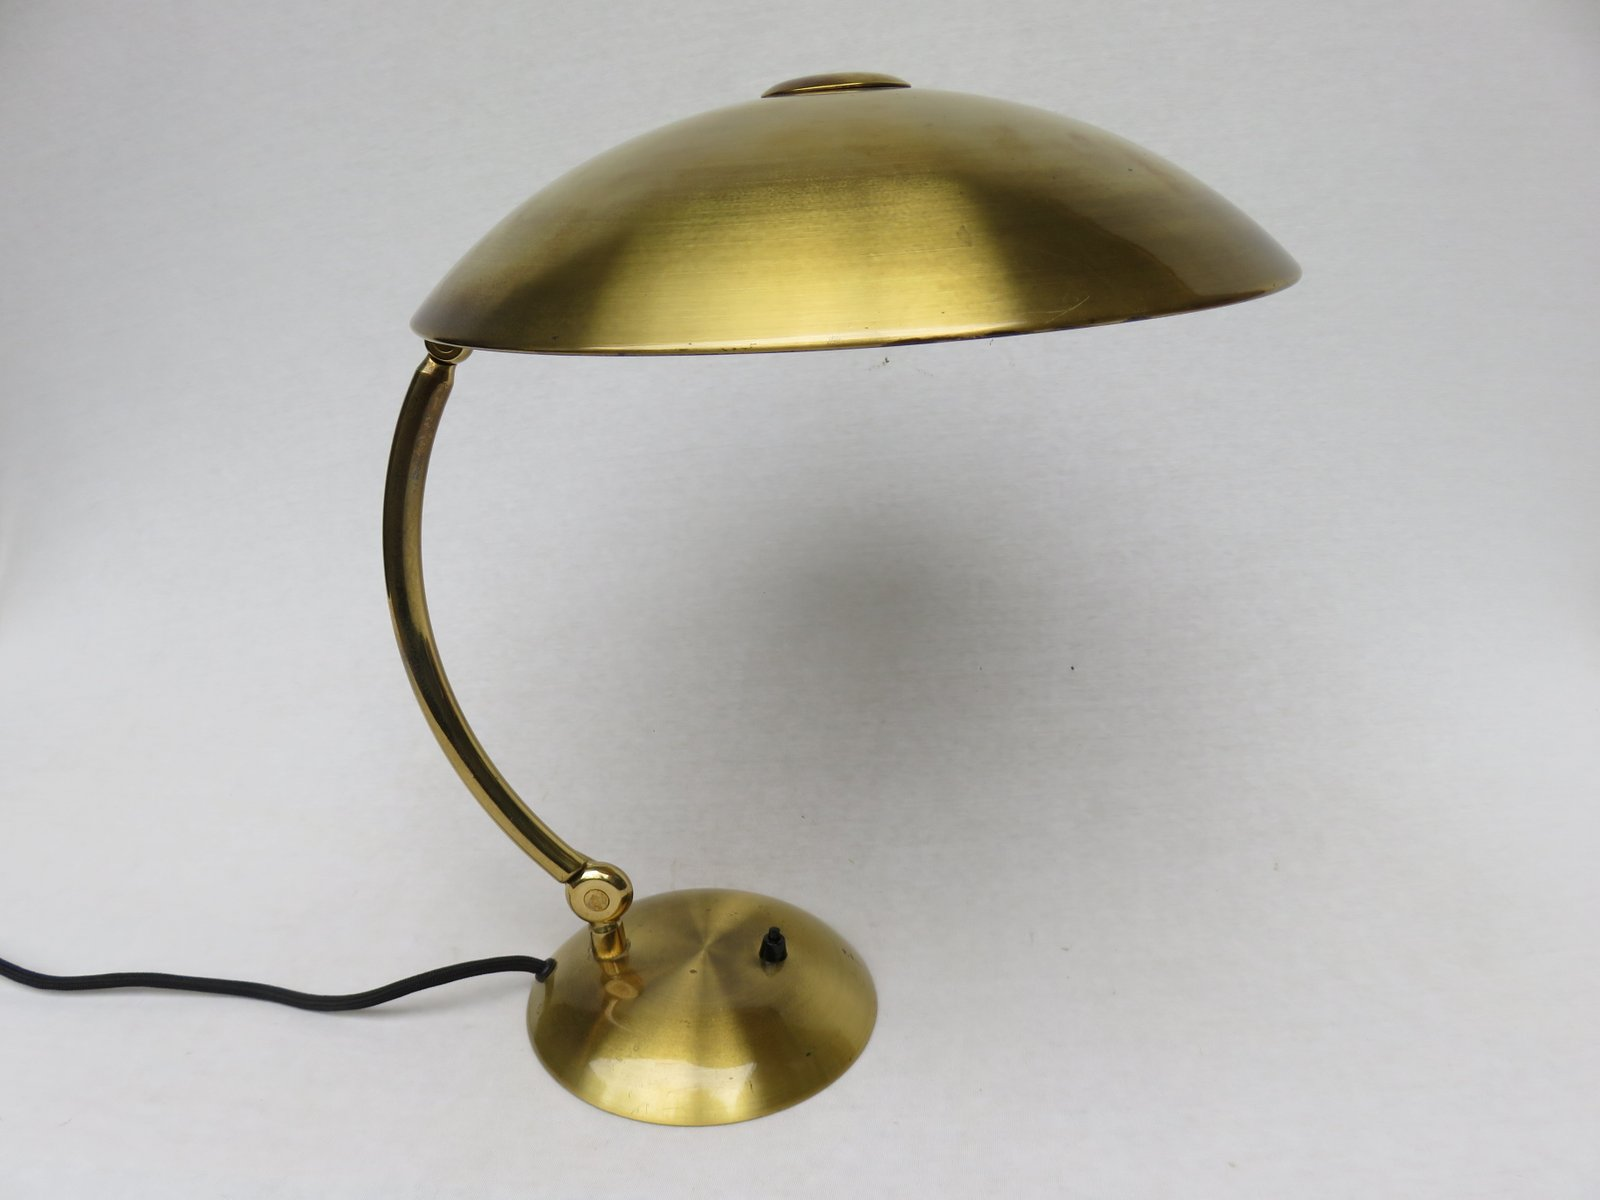 Brass Desk Lamp From Hillebrand, 1930s